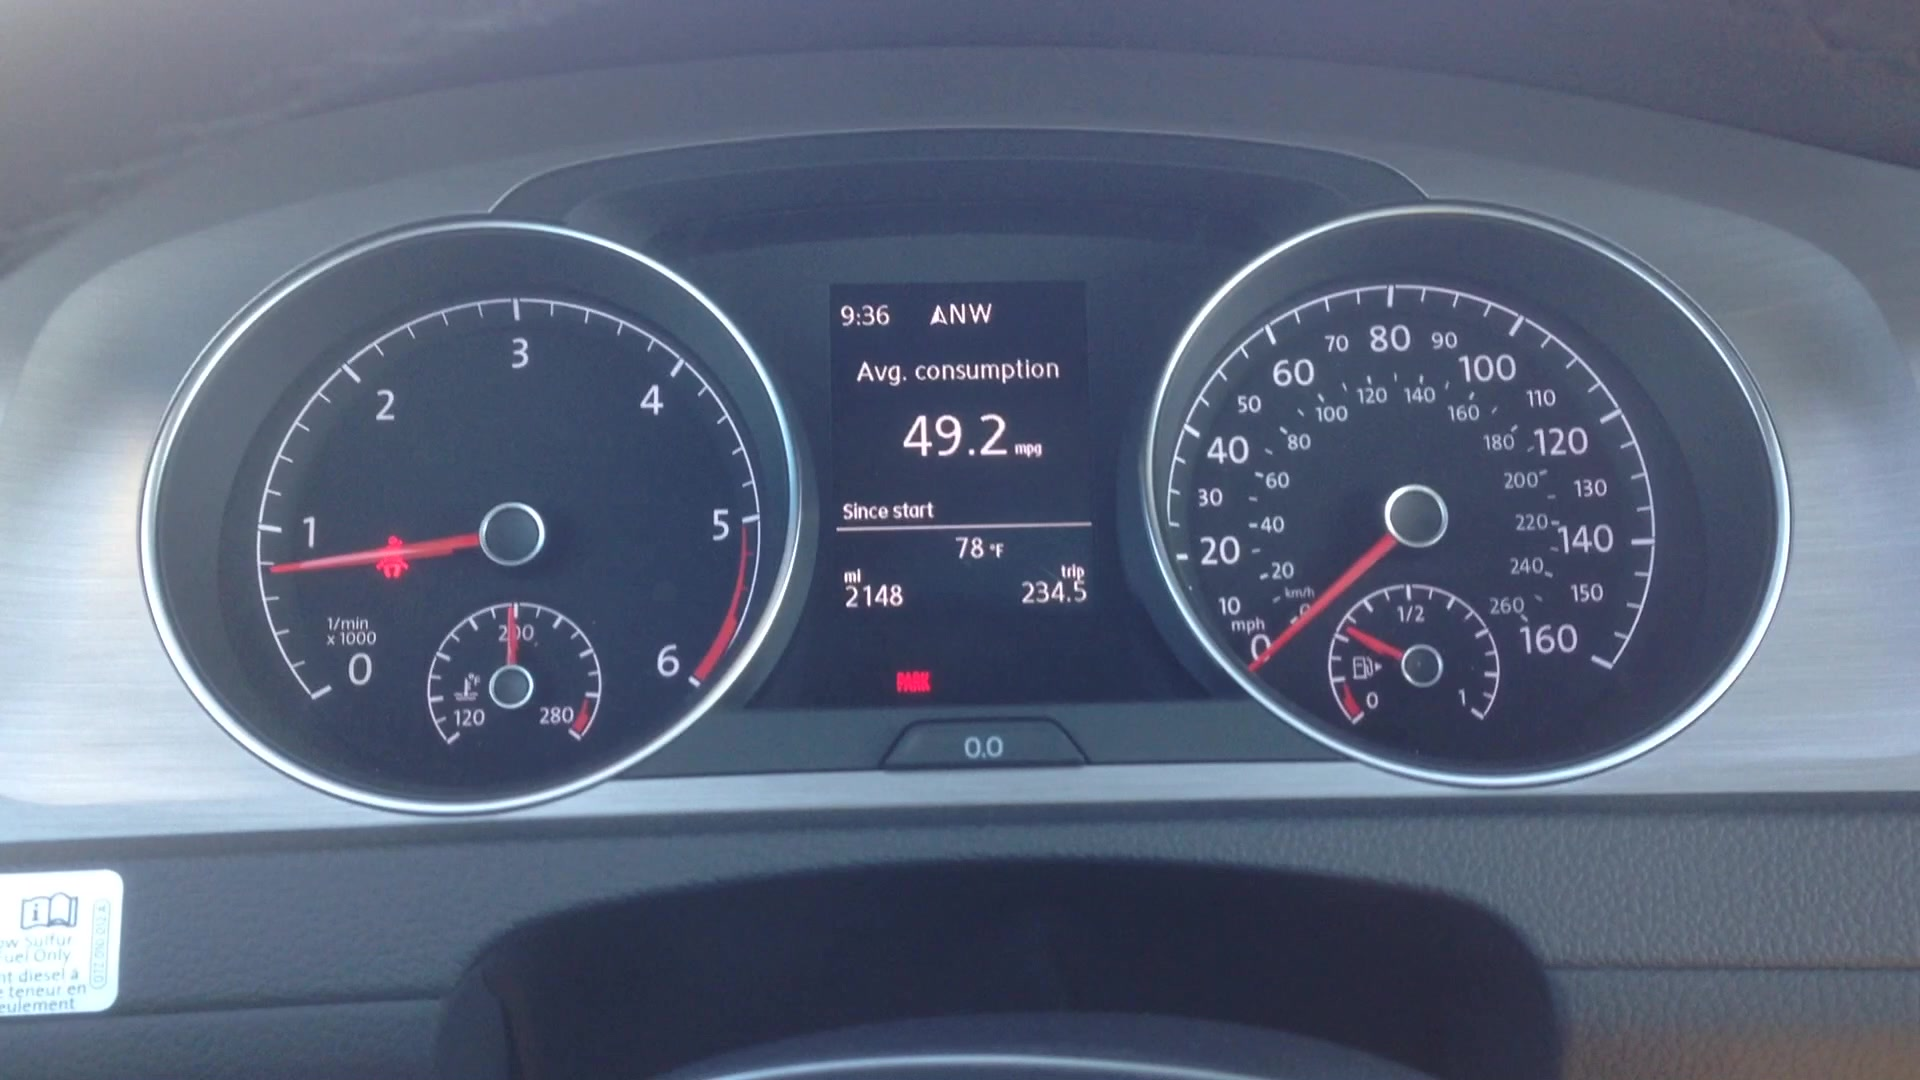 2015 Volkswagen Golf TDI Real World Fuel Economy | Autoblog Short Cuts